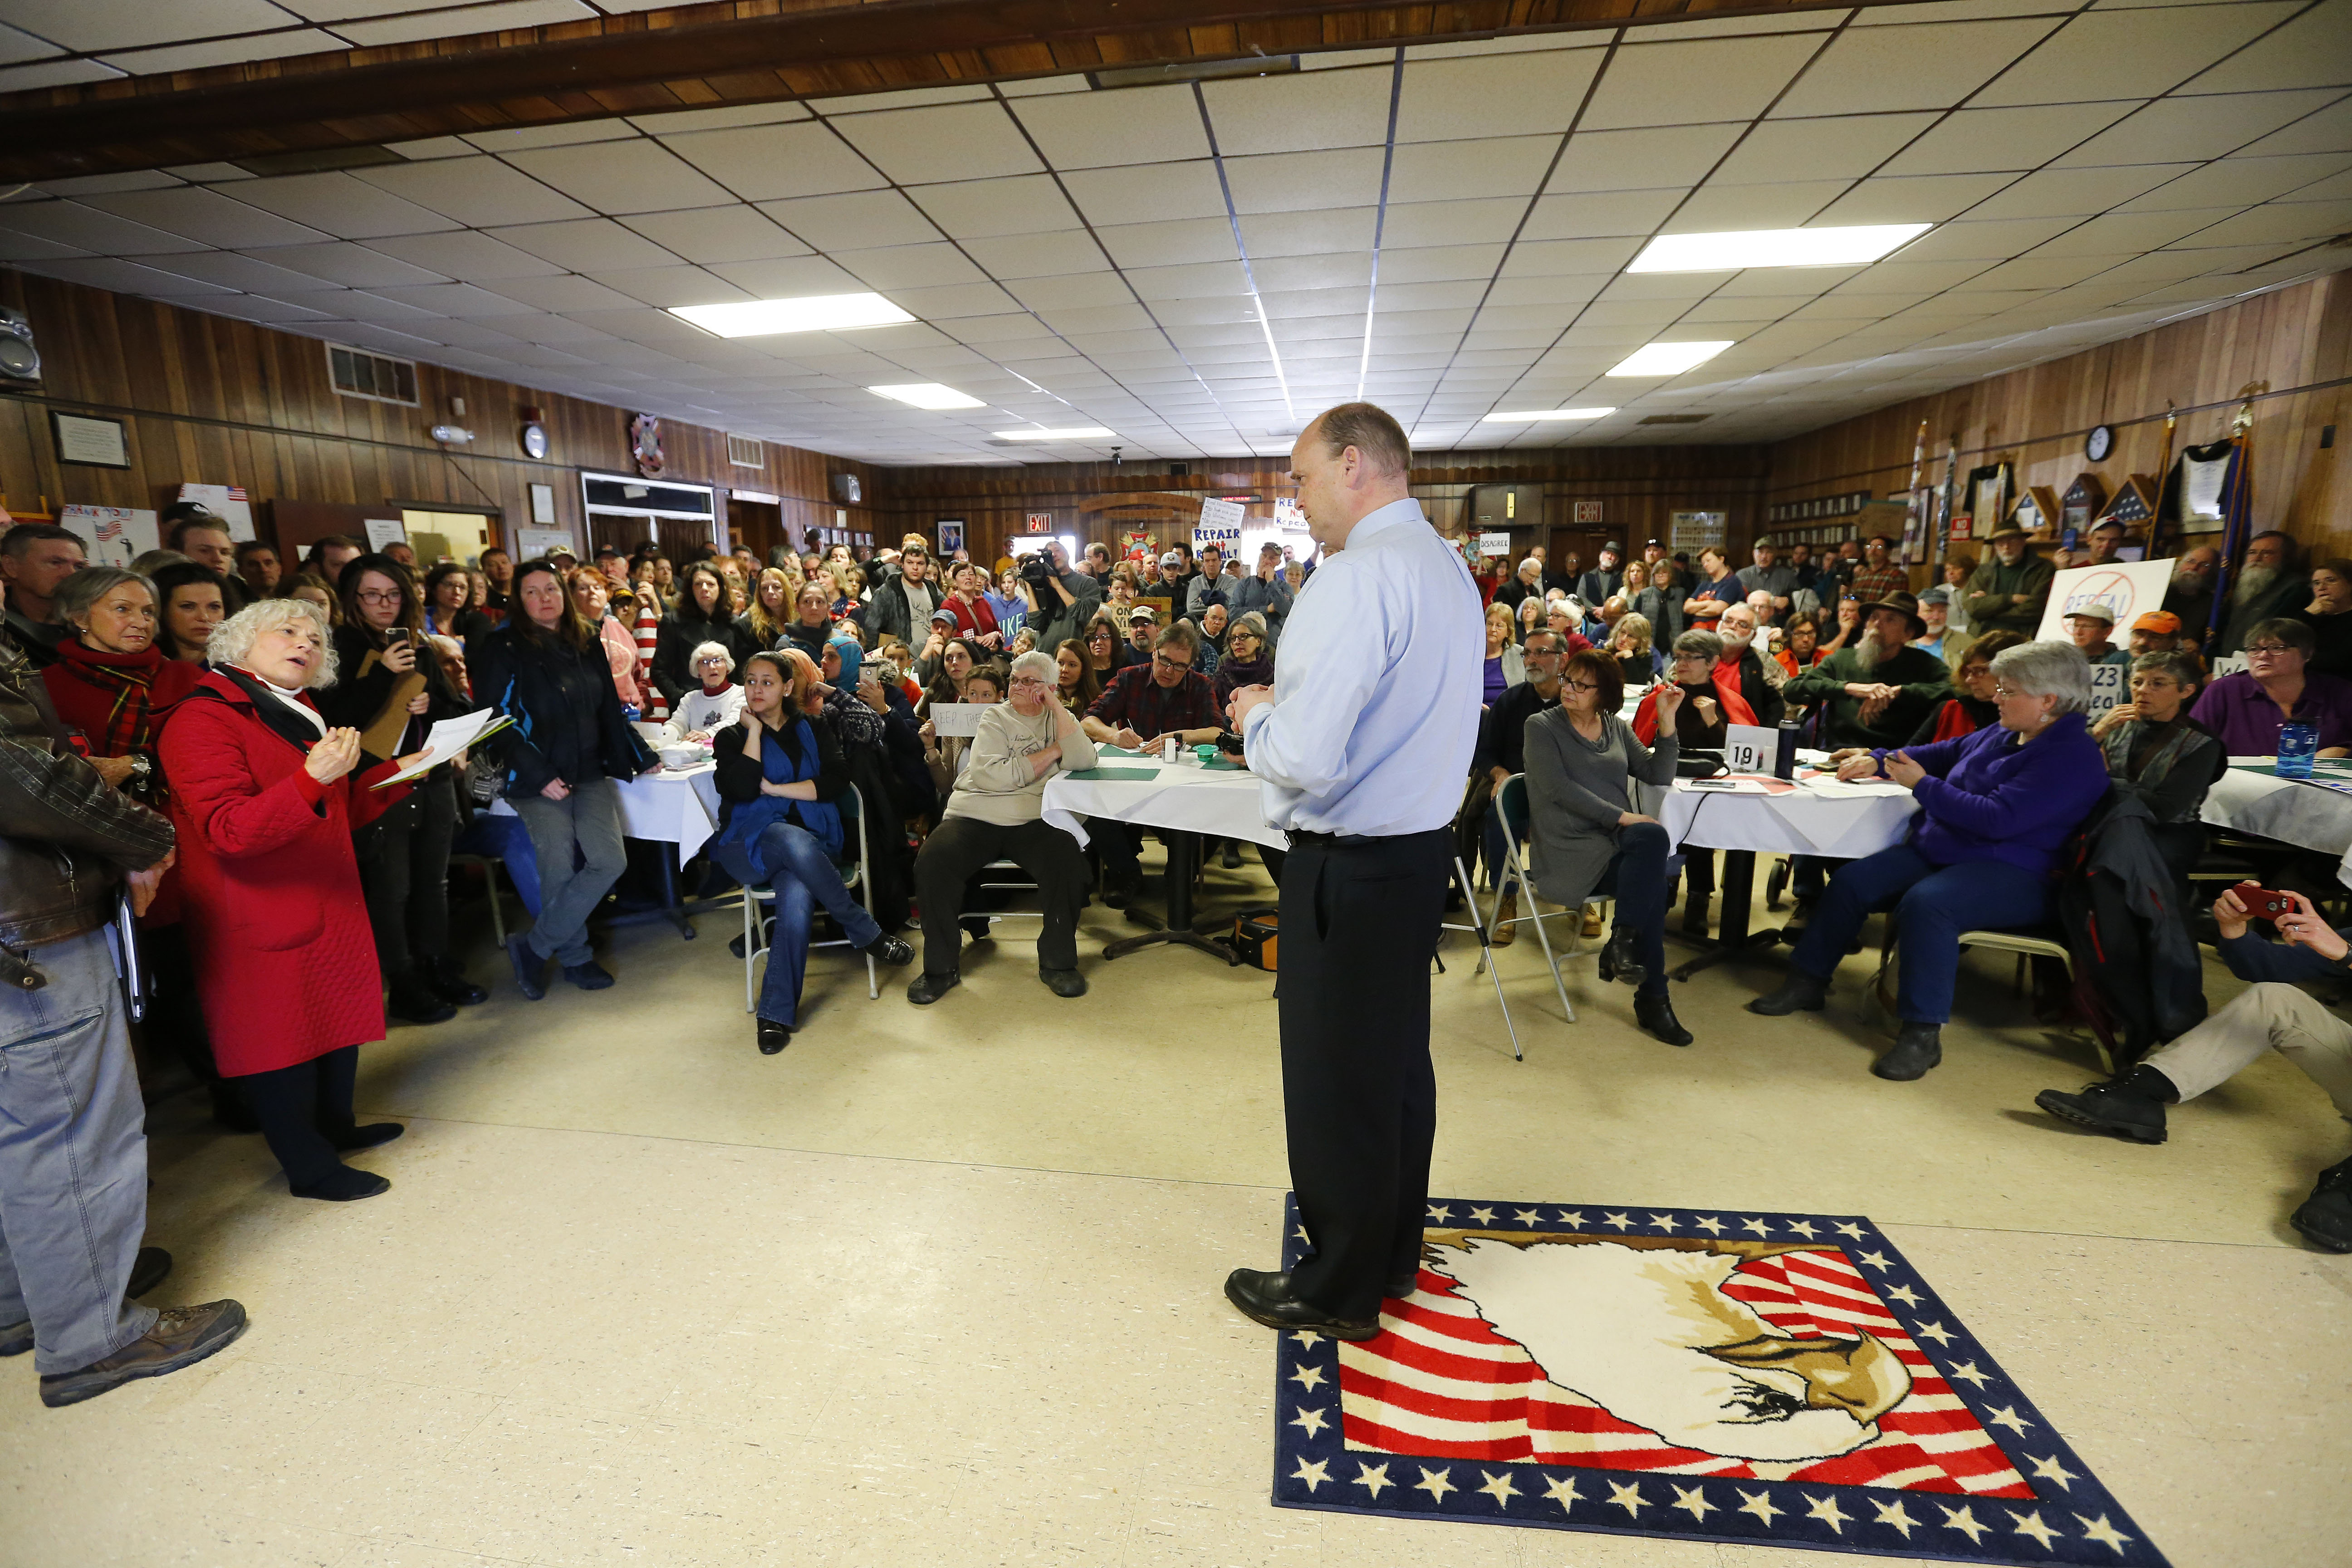 Rep. Tom Reed, R-Corning, speaks to a packed crowd at the Pine Valley VFW Post 2522 in Cherry Creek on Feb. 18, 2017. (Mark Mulville/News file photo)